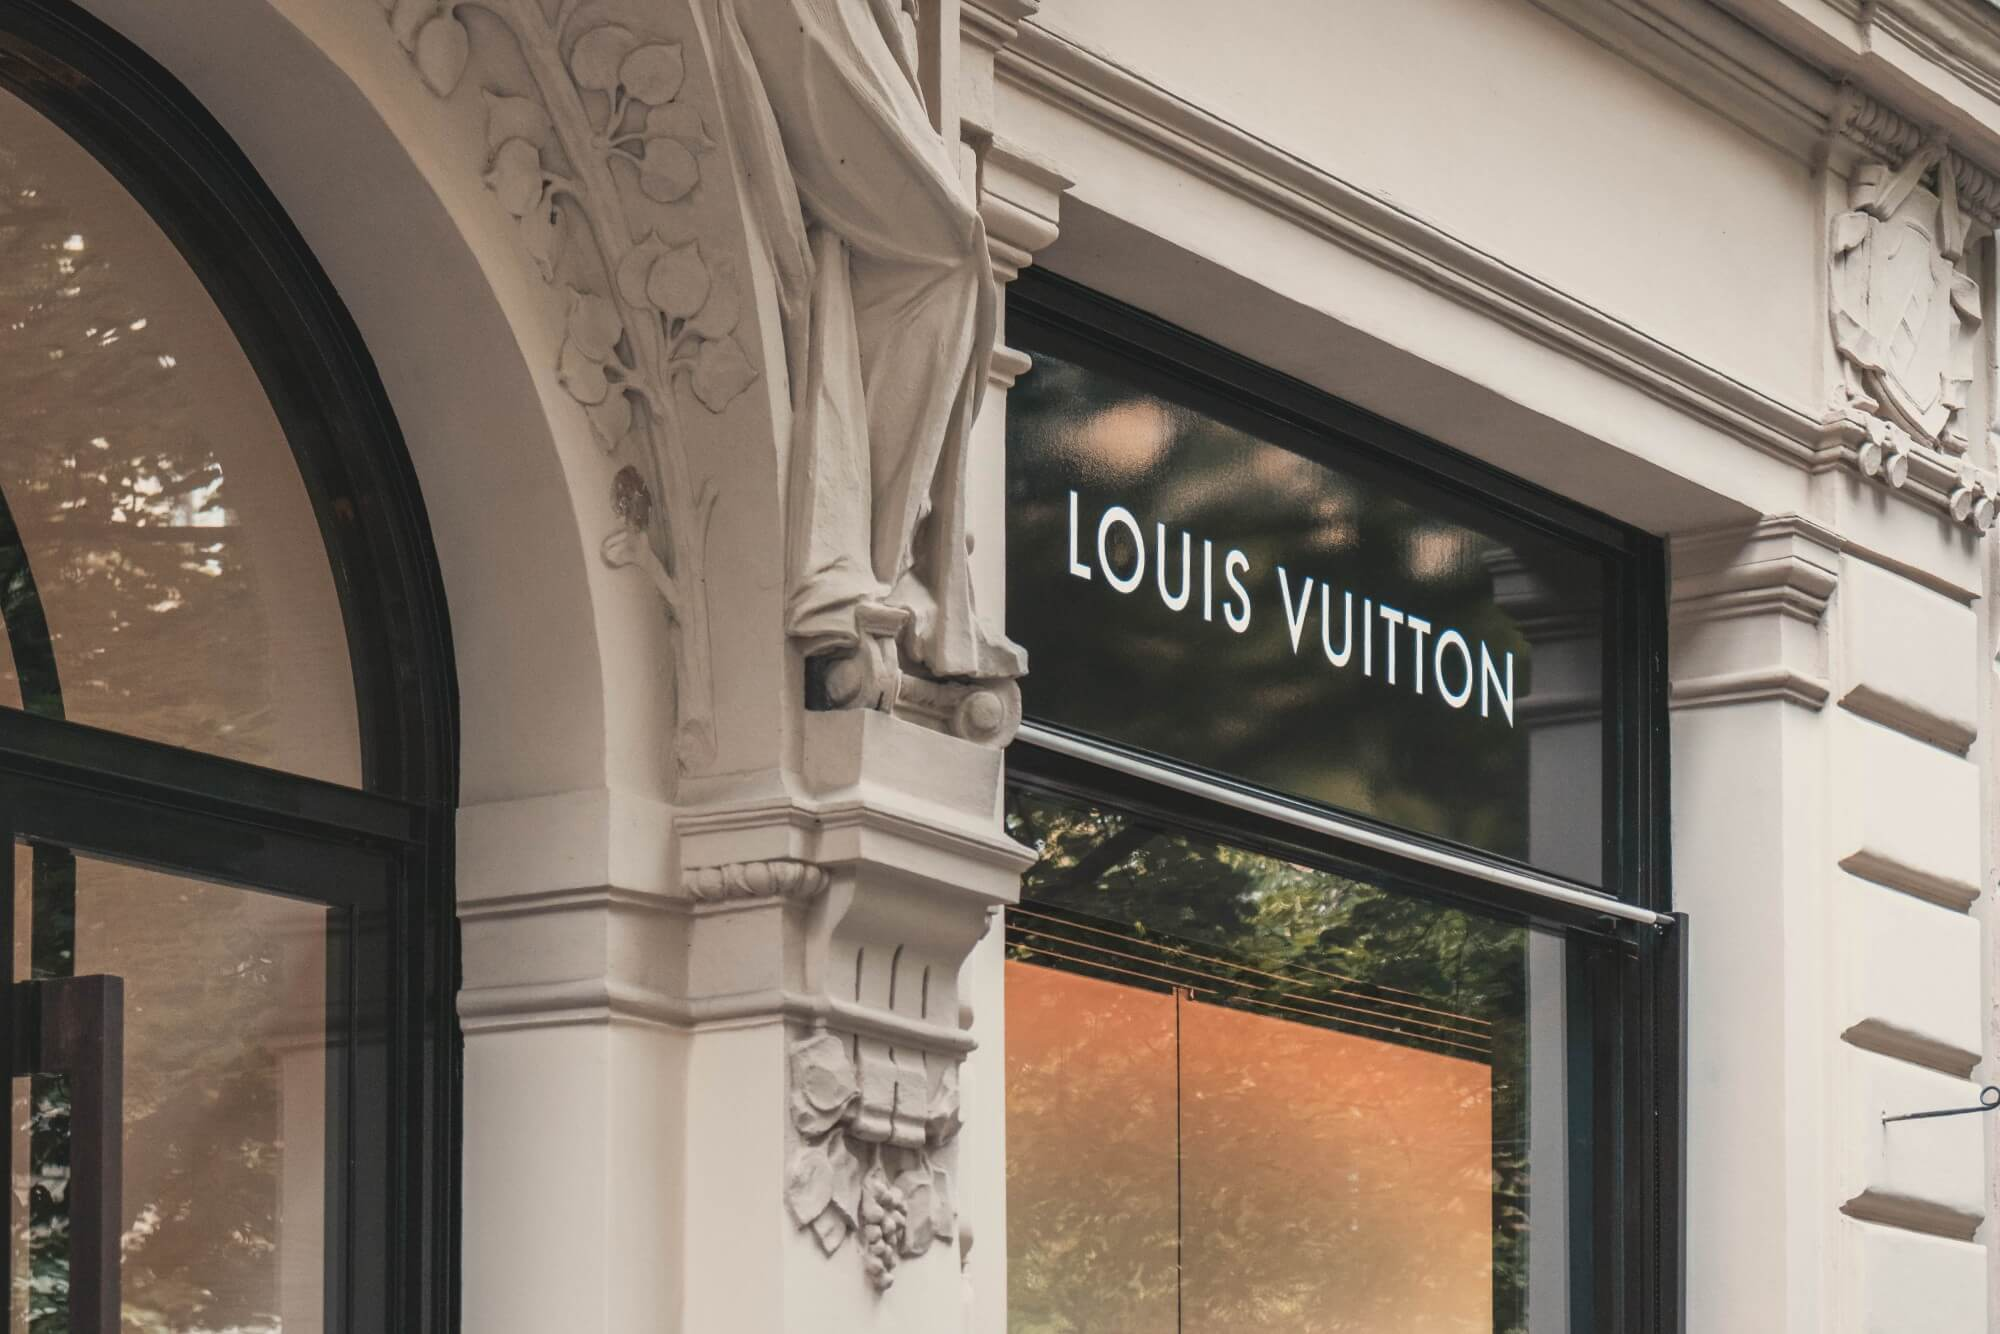 Store window sign of Louis Vuitton